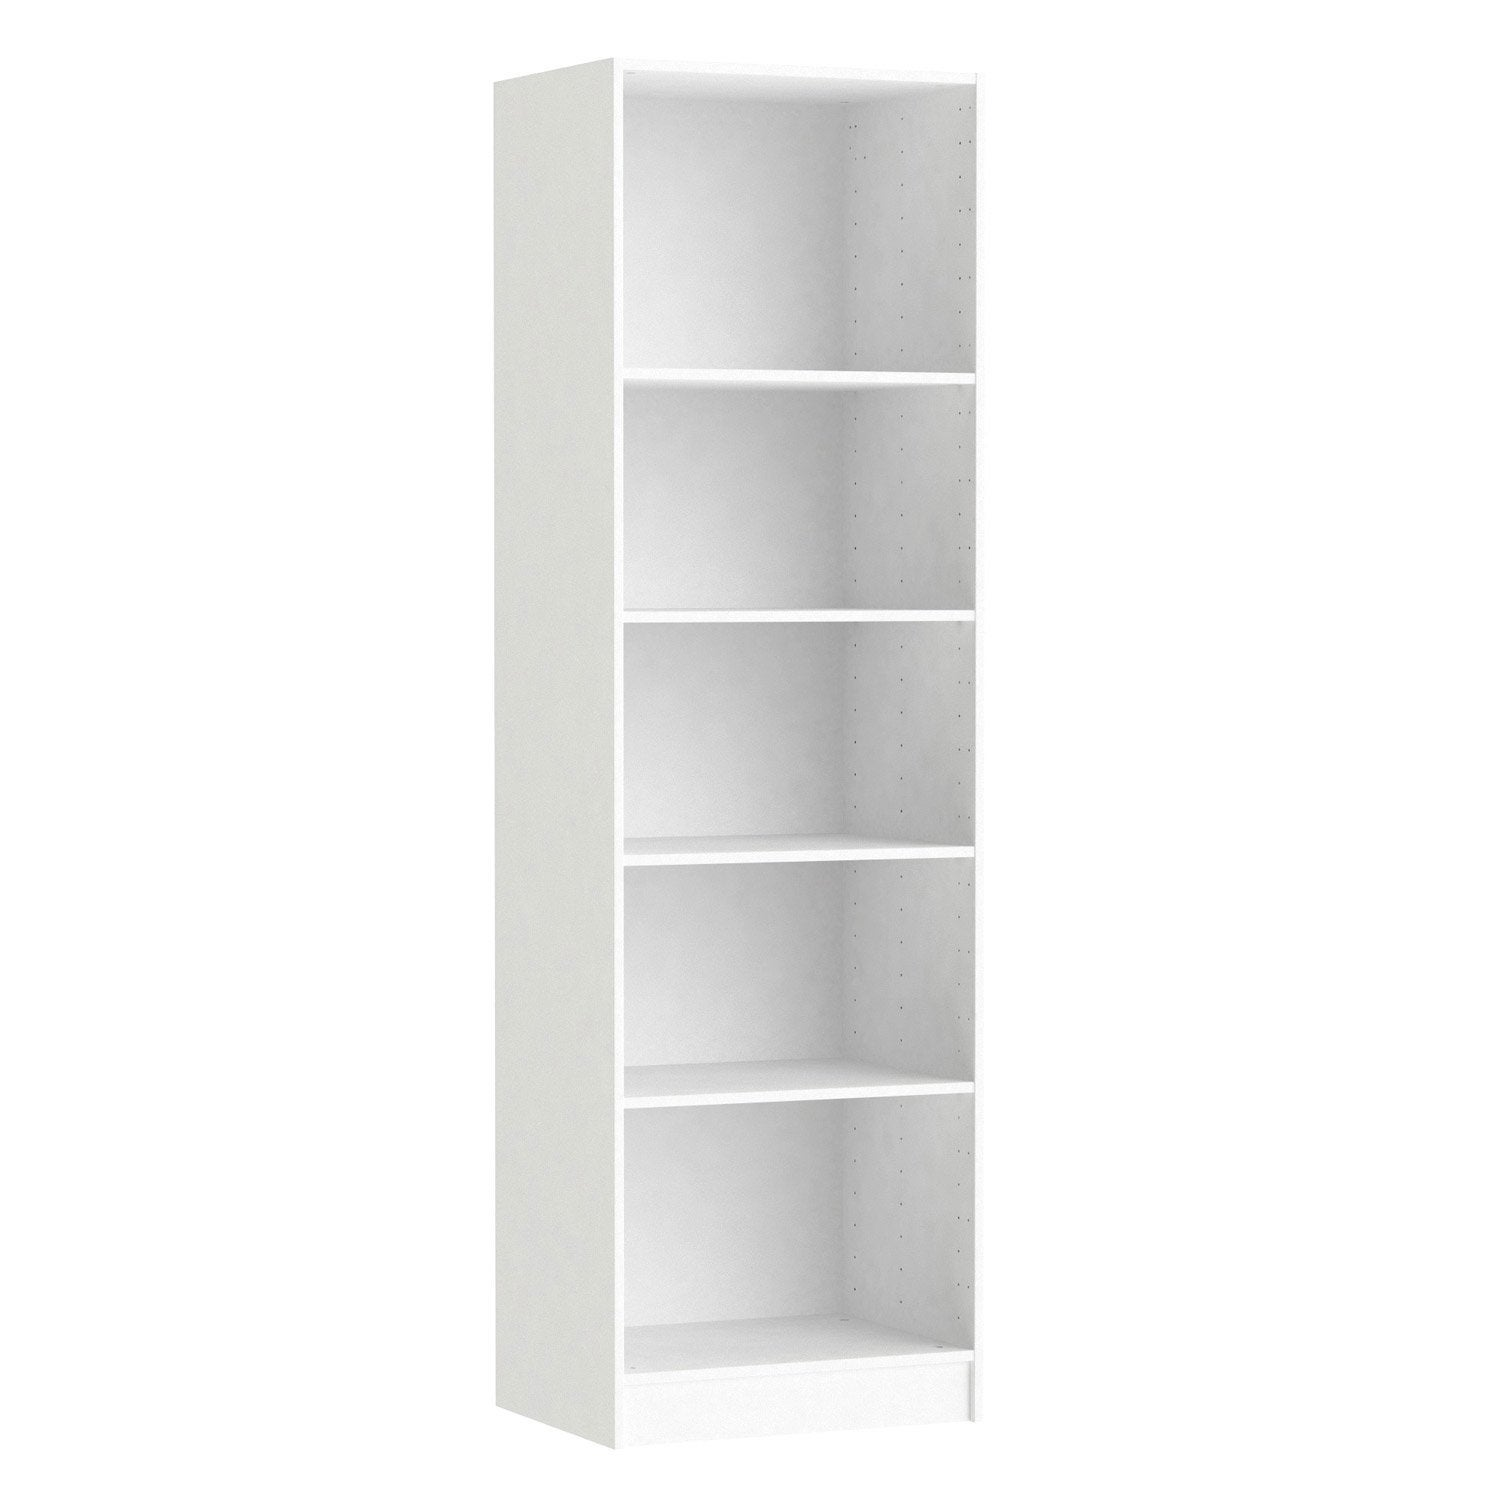 Caisson spaceo home 200 x 60 x 45 cm blanc leroy merlin - Leroy merlin portant ...